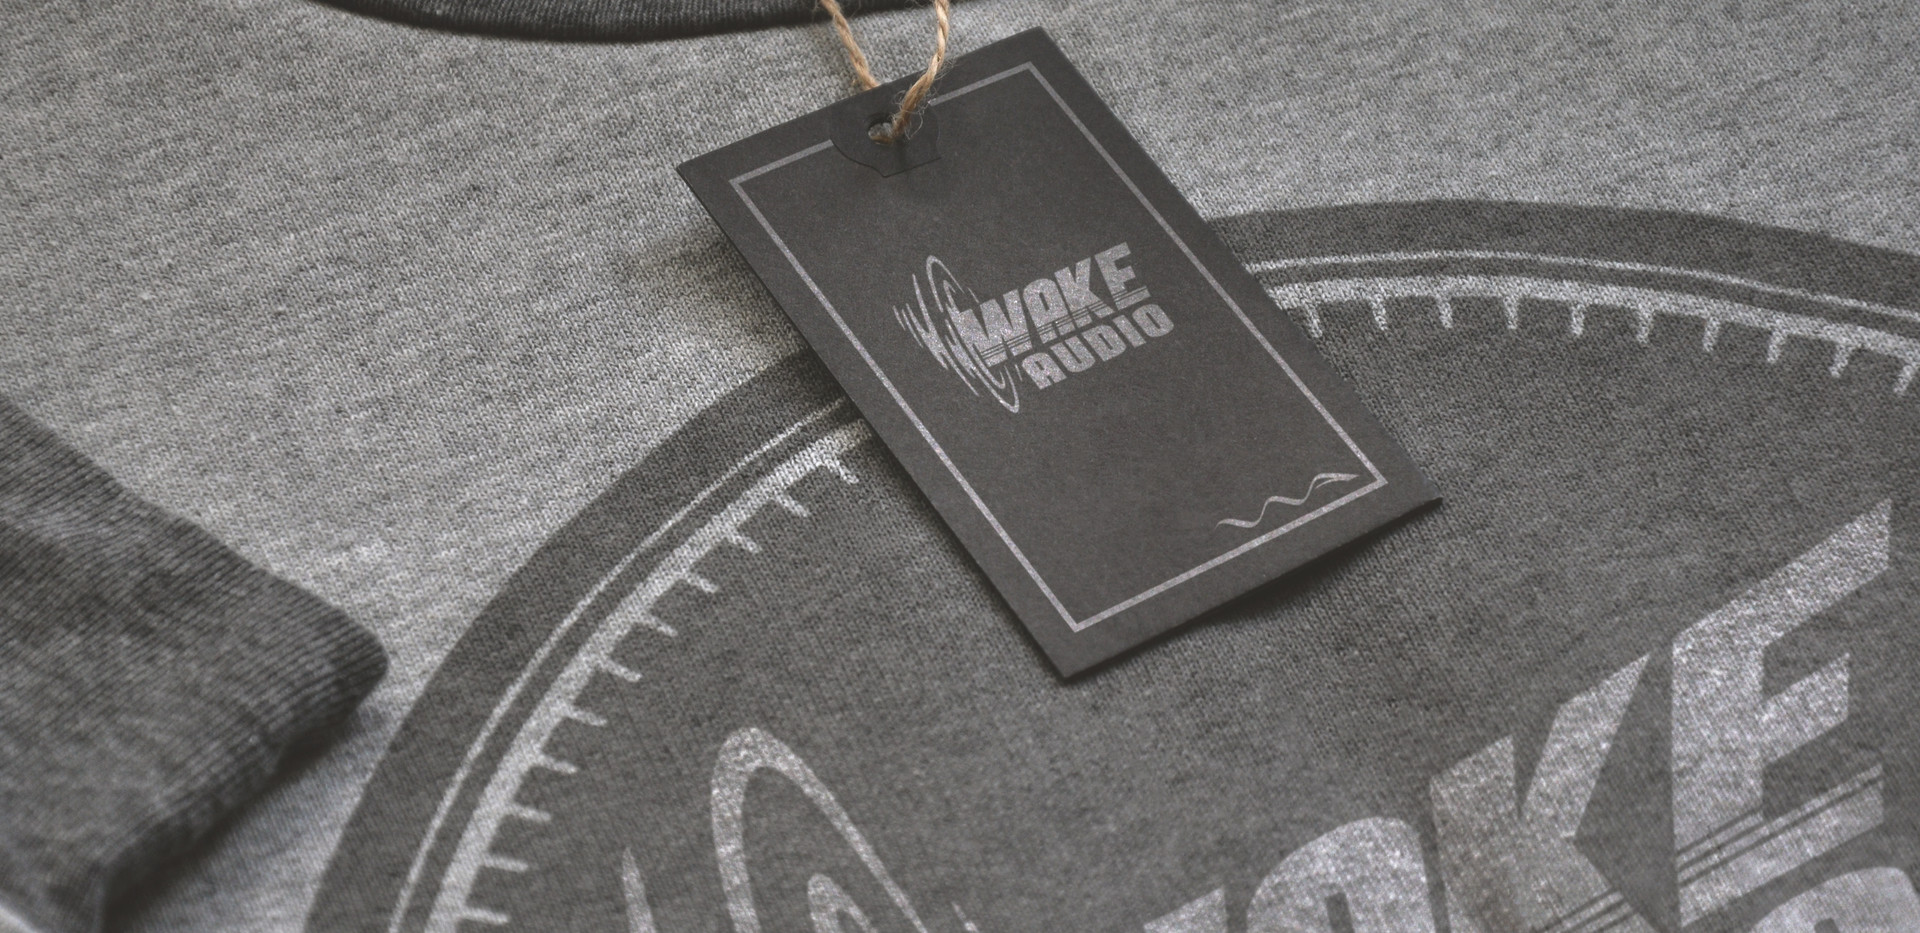 Wake Audio shirt